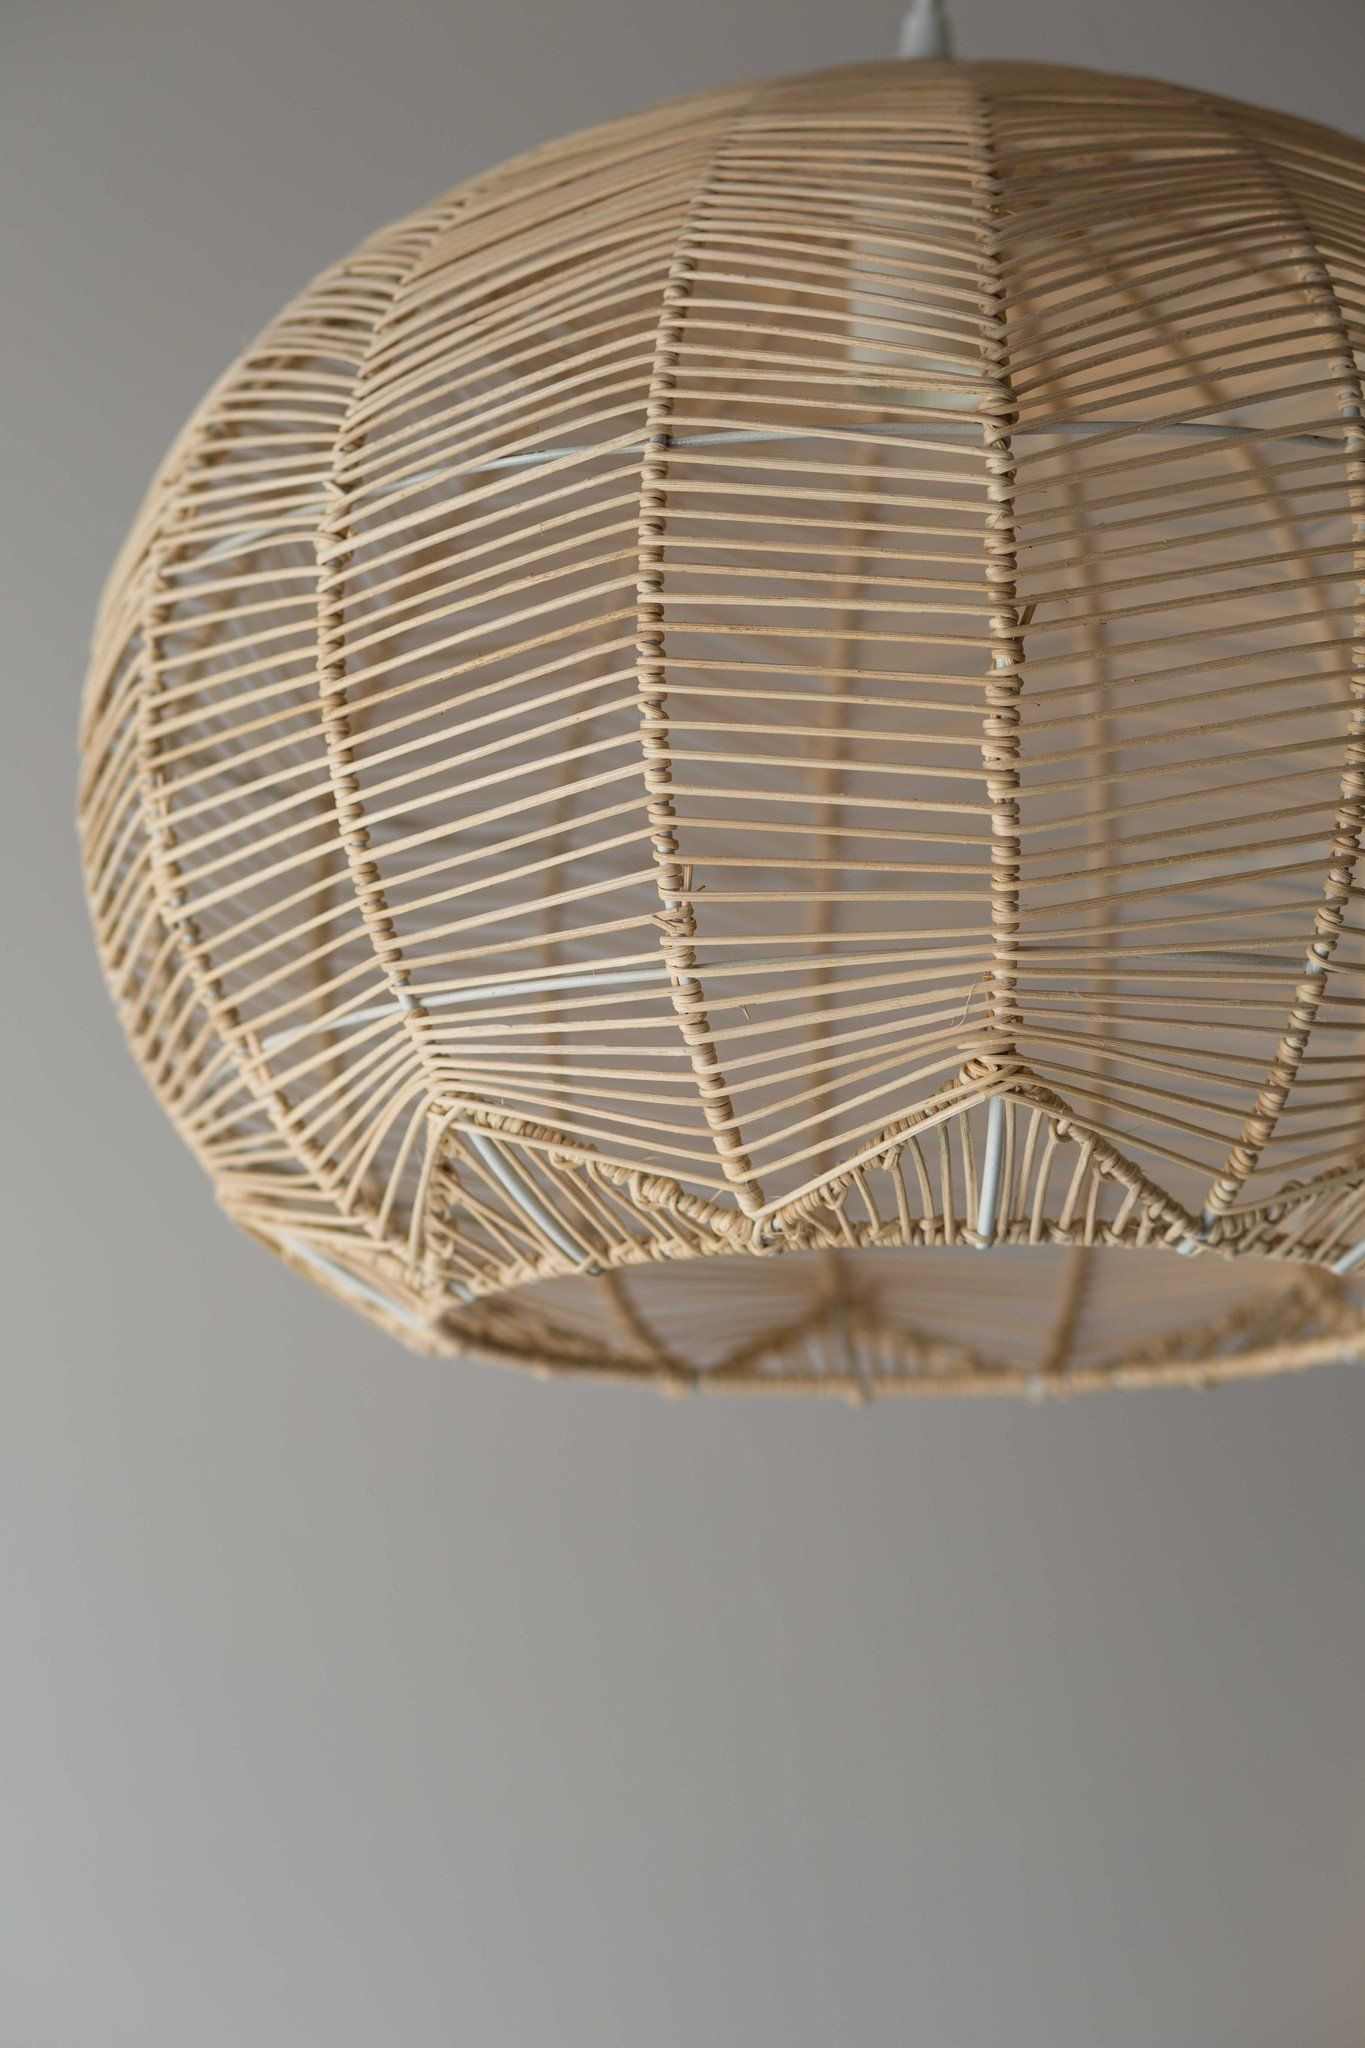 Natural round rattan pendant - pre order | Pinterest ...